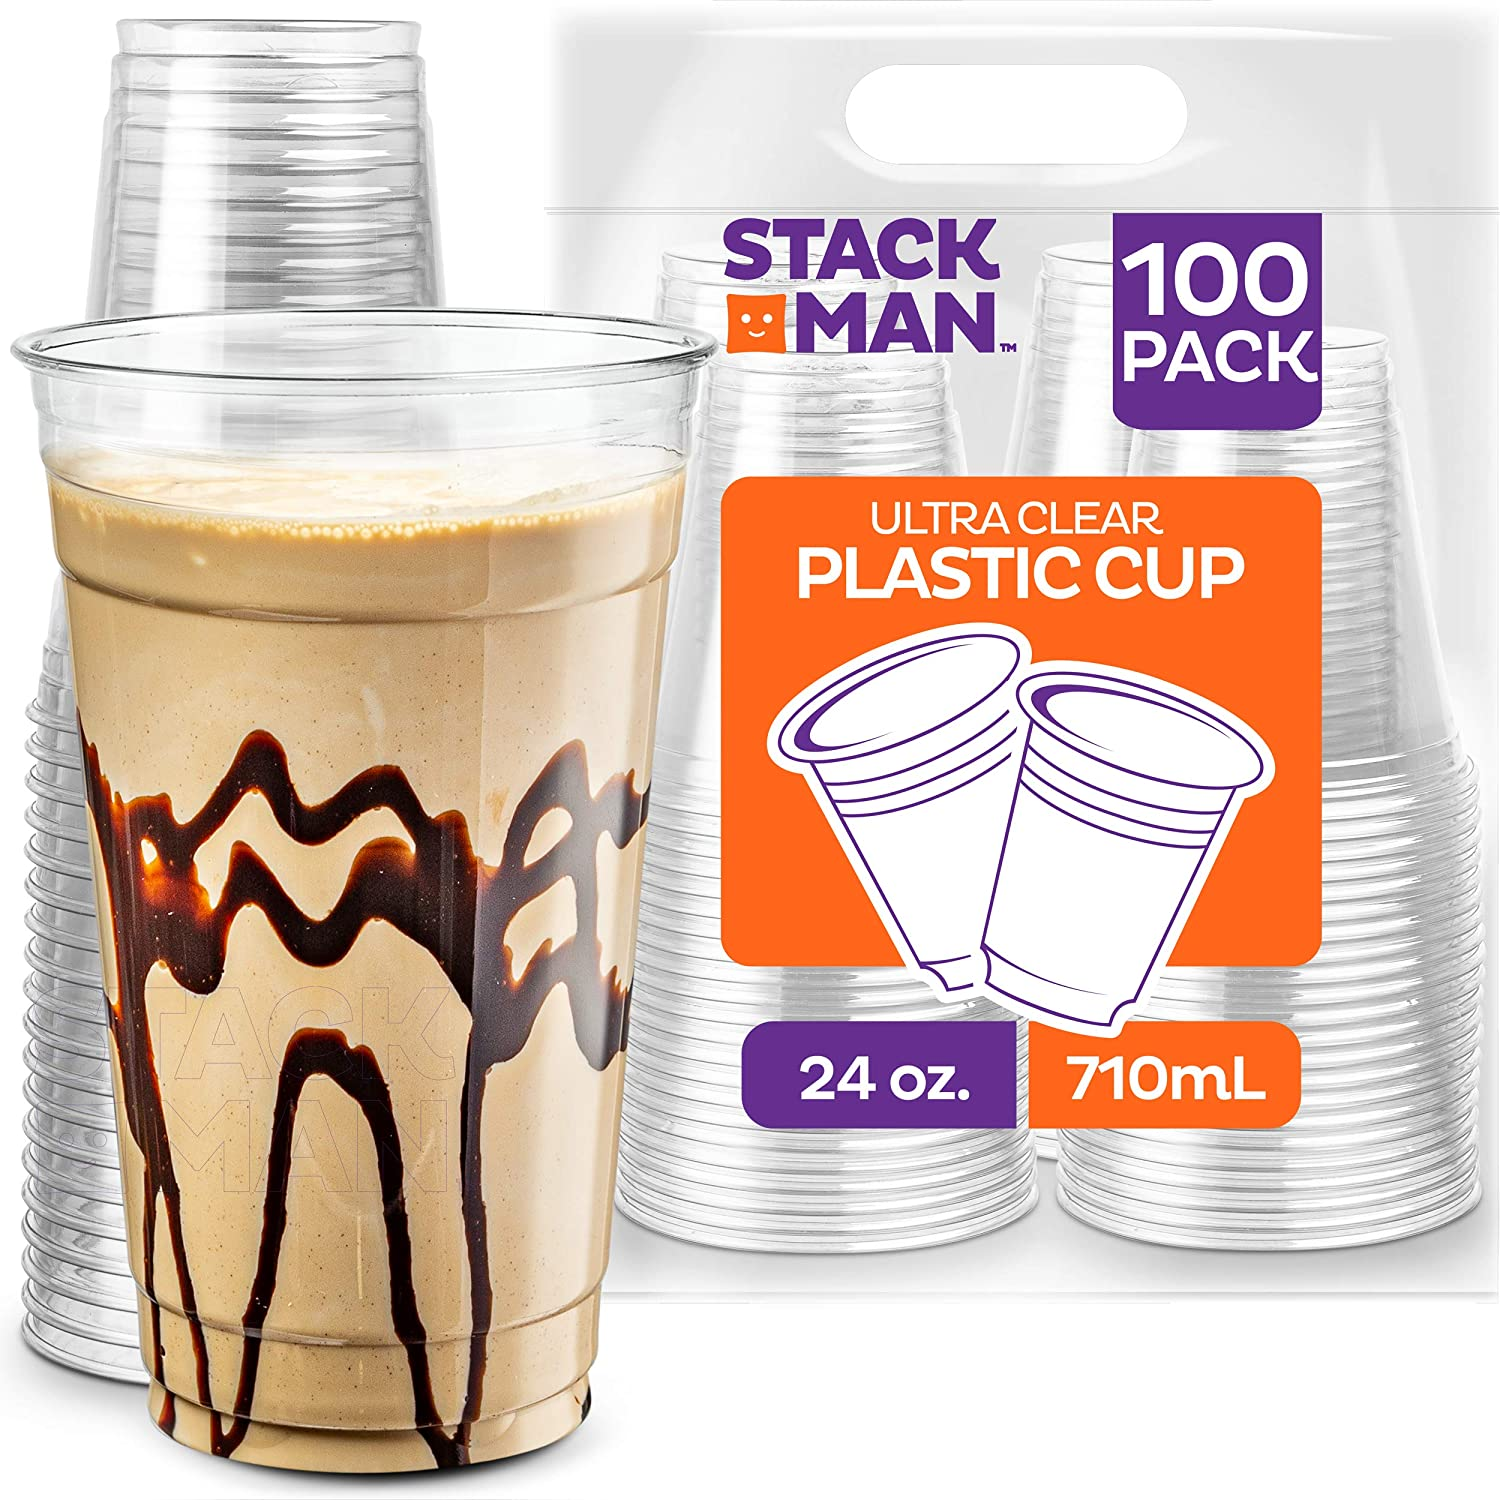 Stack Man [100 Pack - 24 oz.] Clear Disposable Plastic Cups PET Crystal Clear Disposable 24oz Plastic Cups